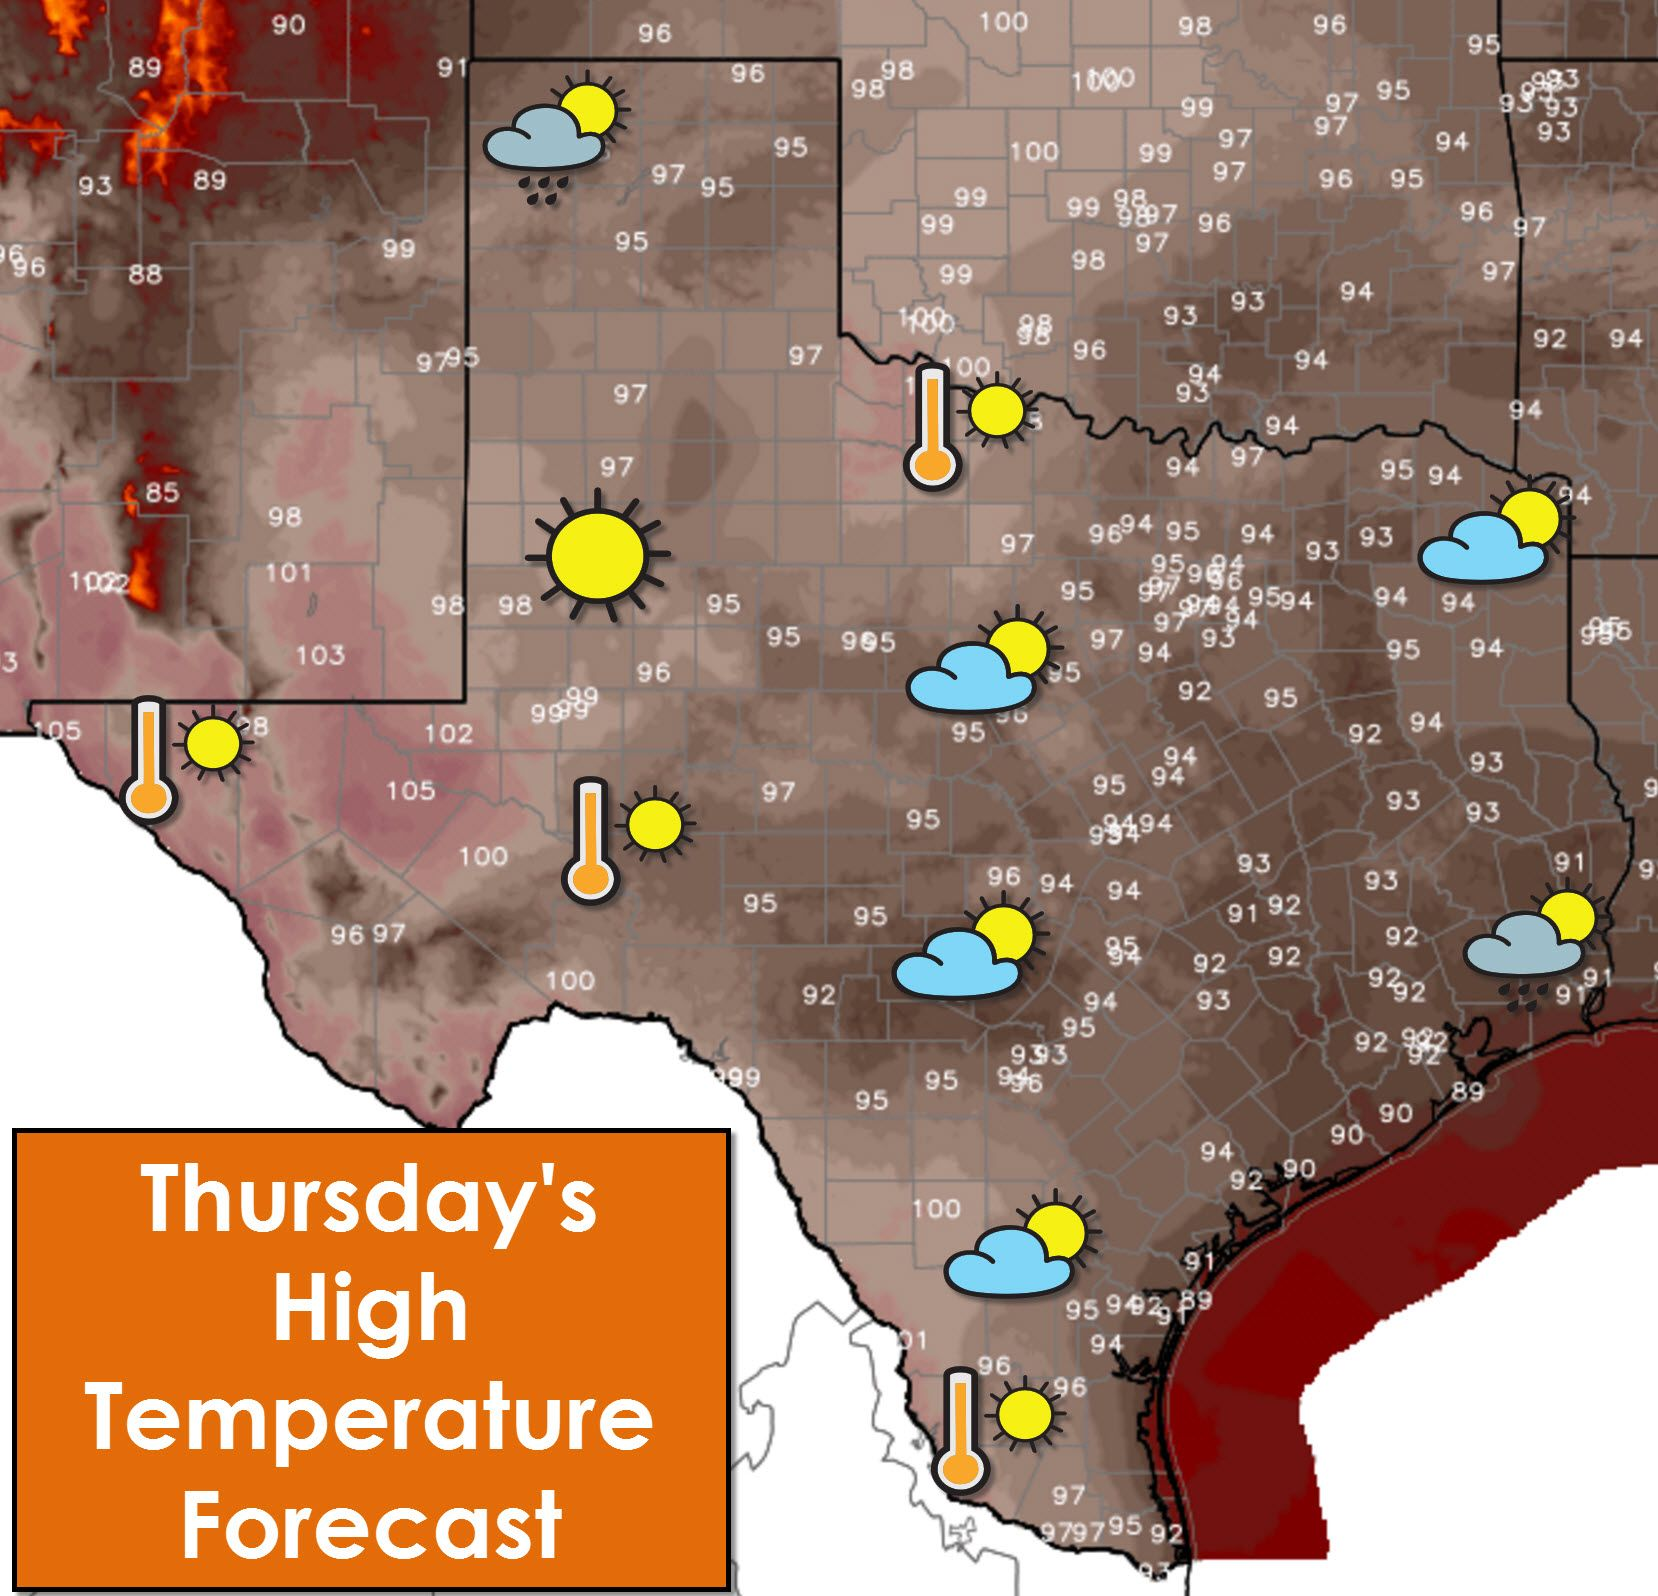 Temperatures in the 90s to low 100s are expected today - and for the foreseeable future across Texas. The good news is afternoon popcorn storms are back in the picture starting today and continuing into the weekend. Check out who will be lucky enough to get above 100° and who may get an afternoon cool off from a shower at http://texasstormchasers.com/?p=45548. #txwx